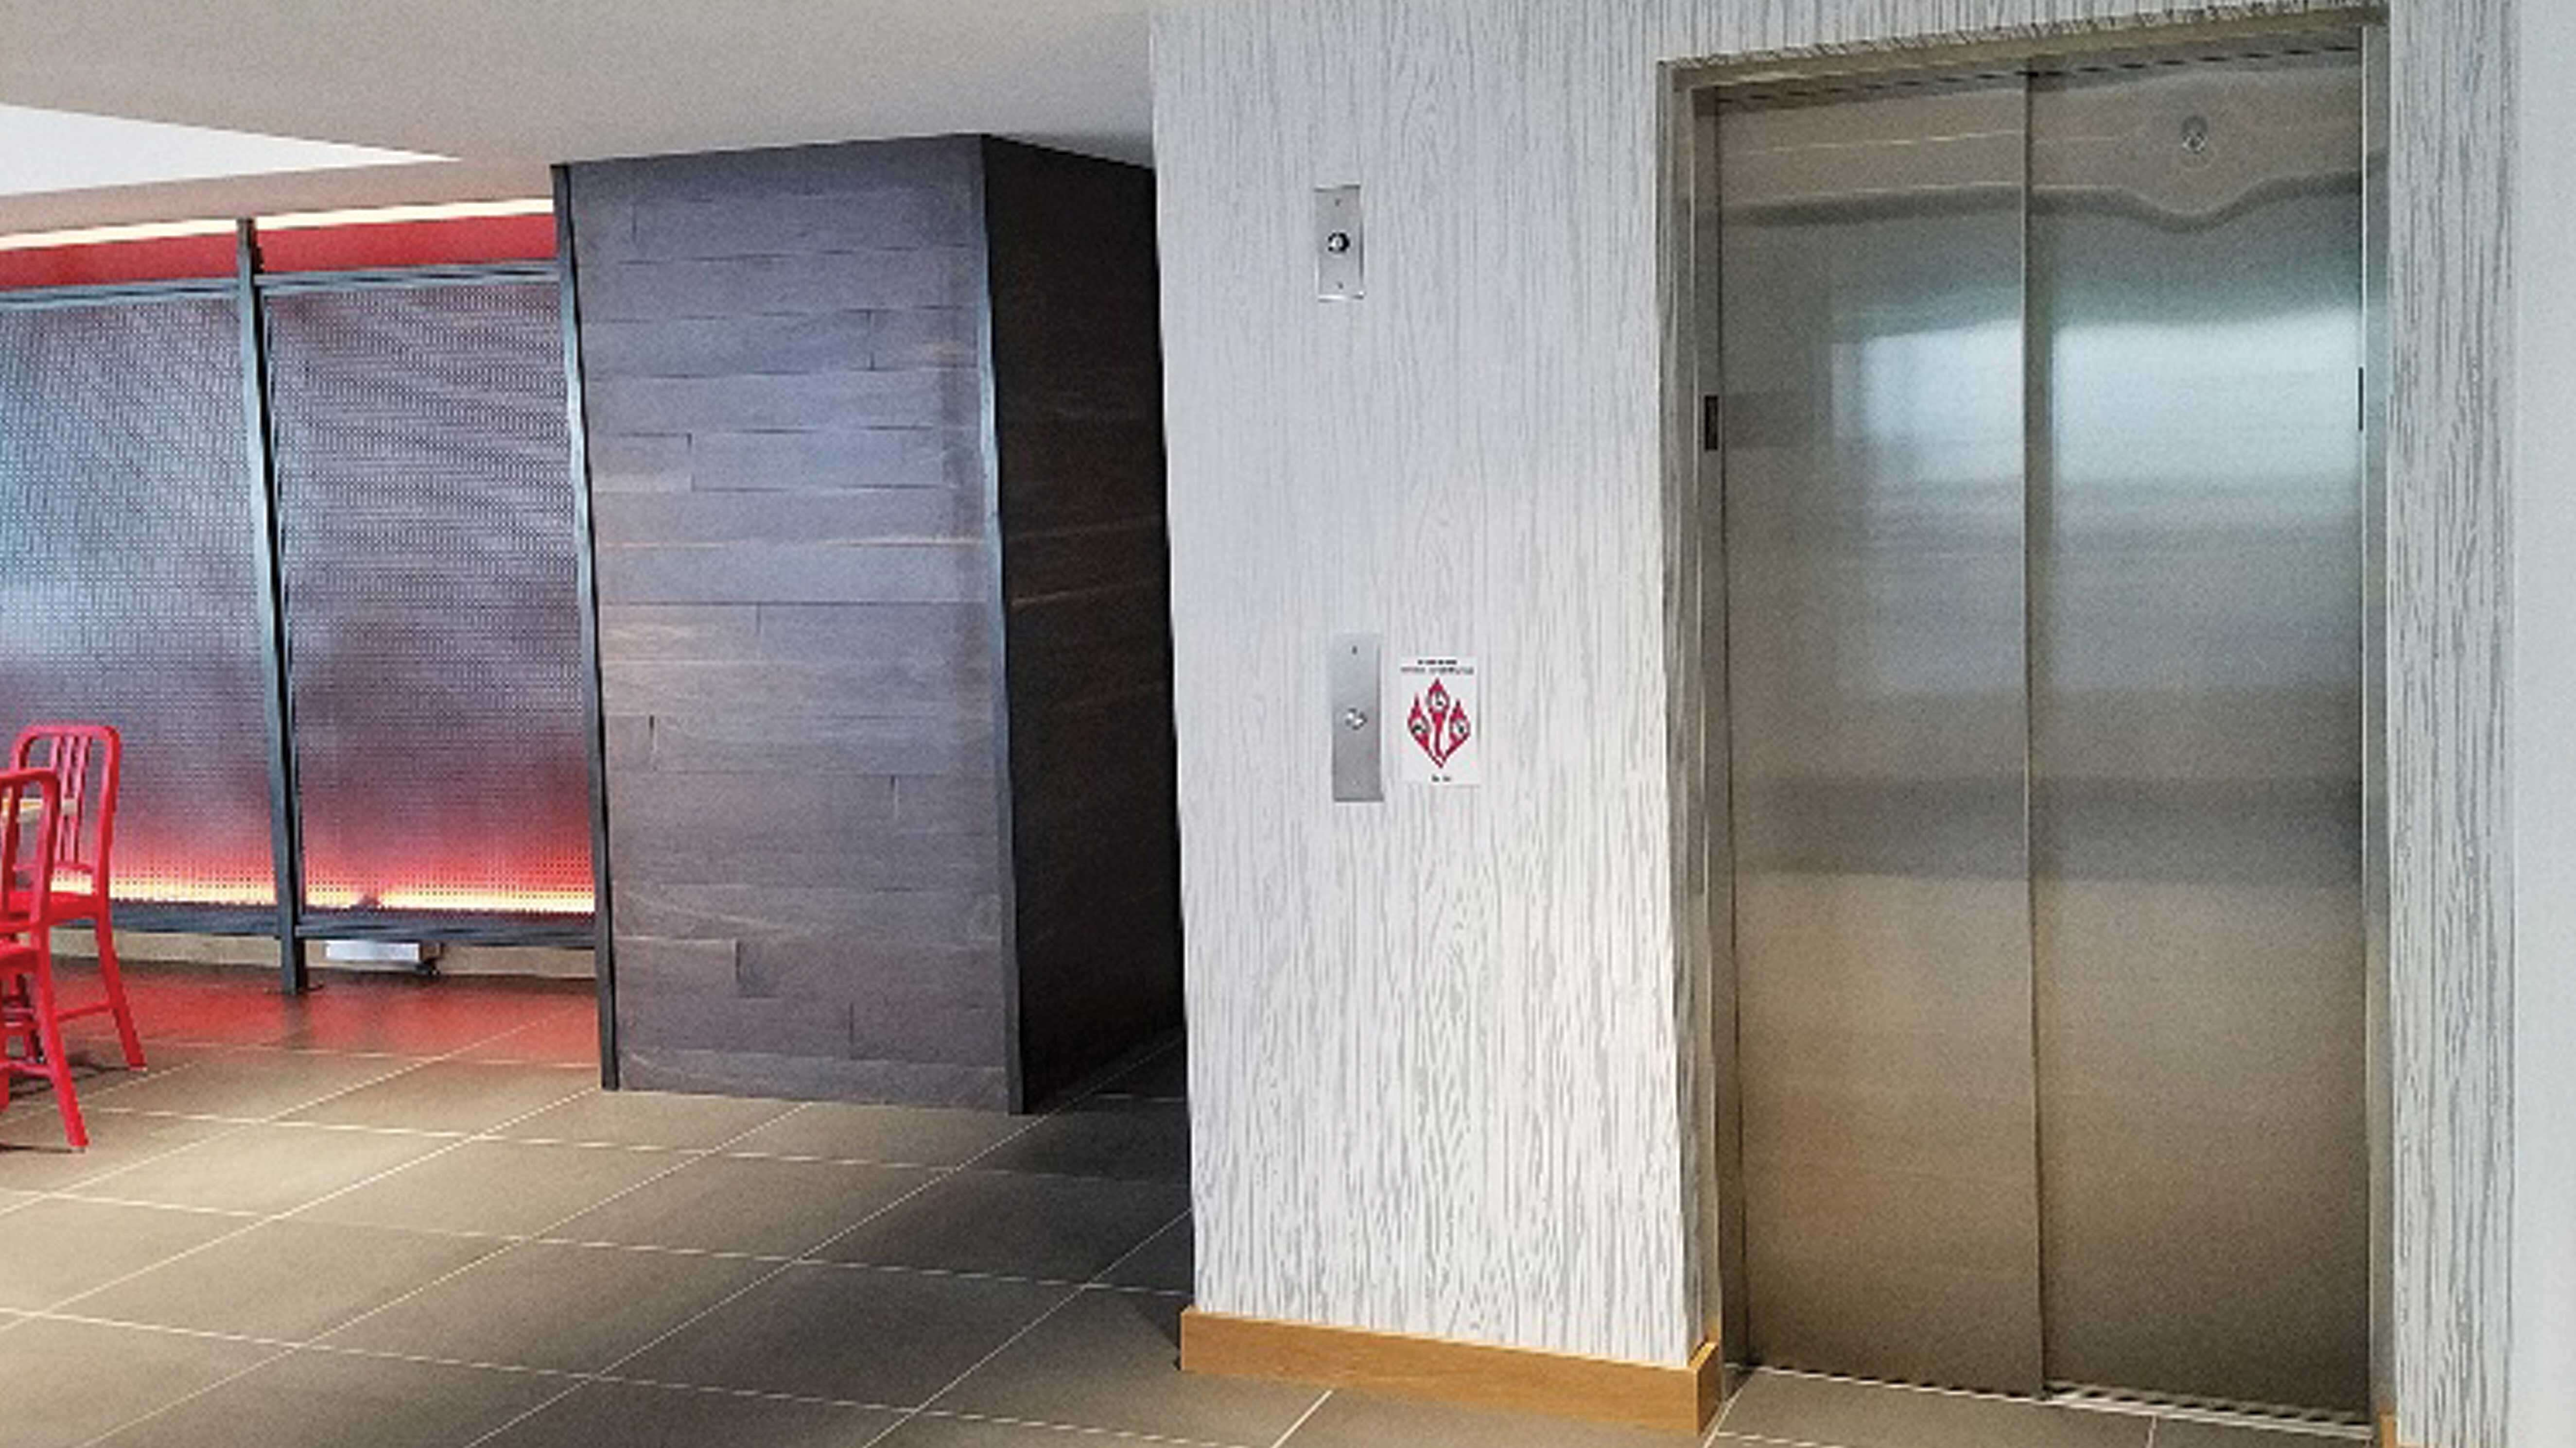 Stainless Steel Elevator Cars: LULA Product Highlight